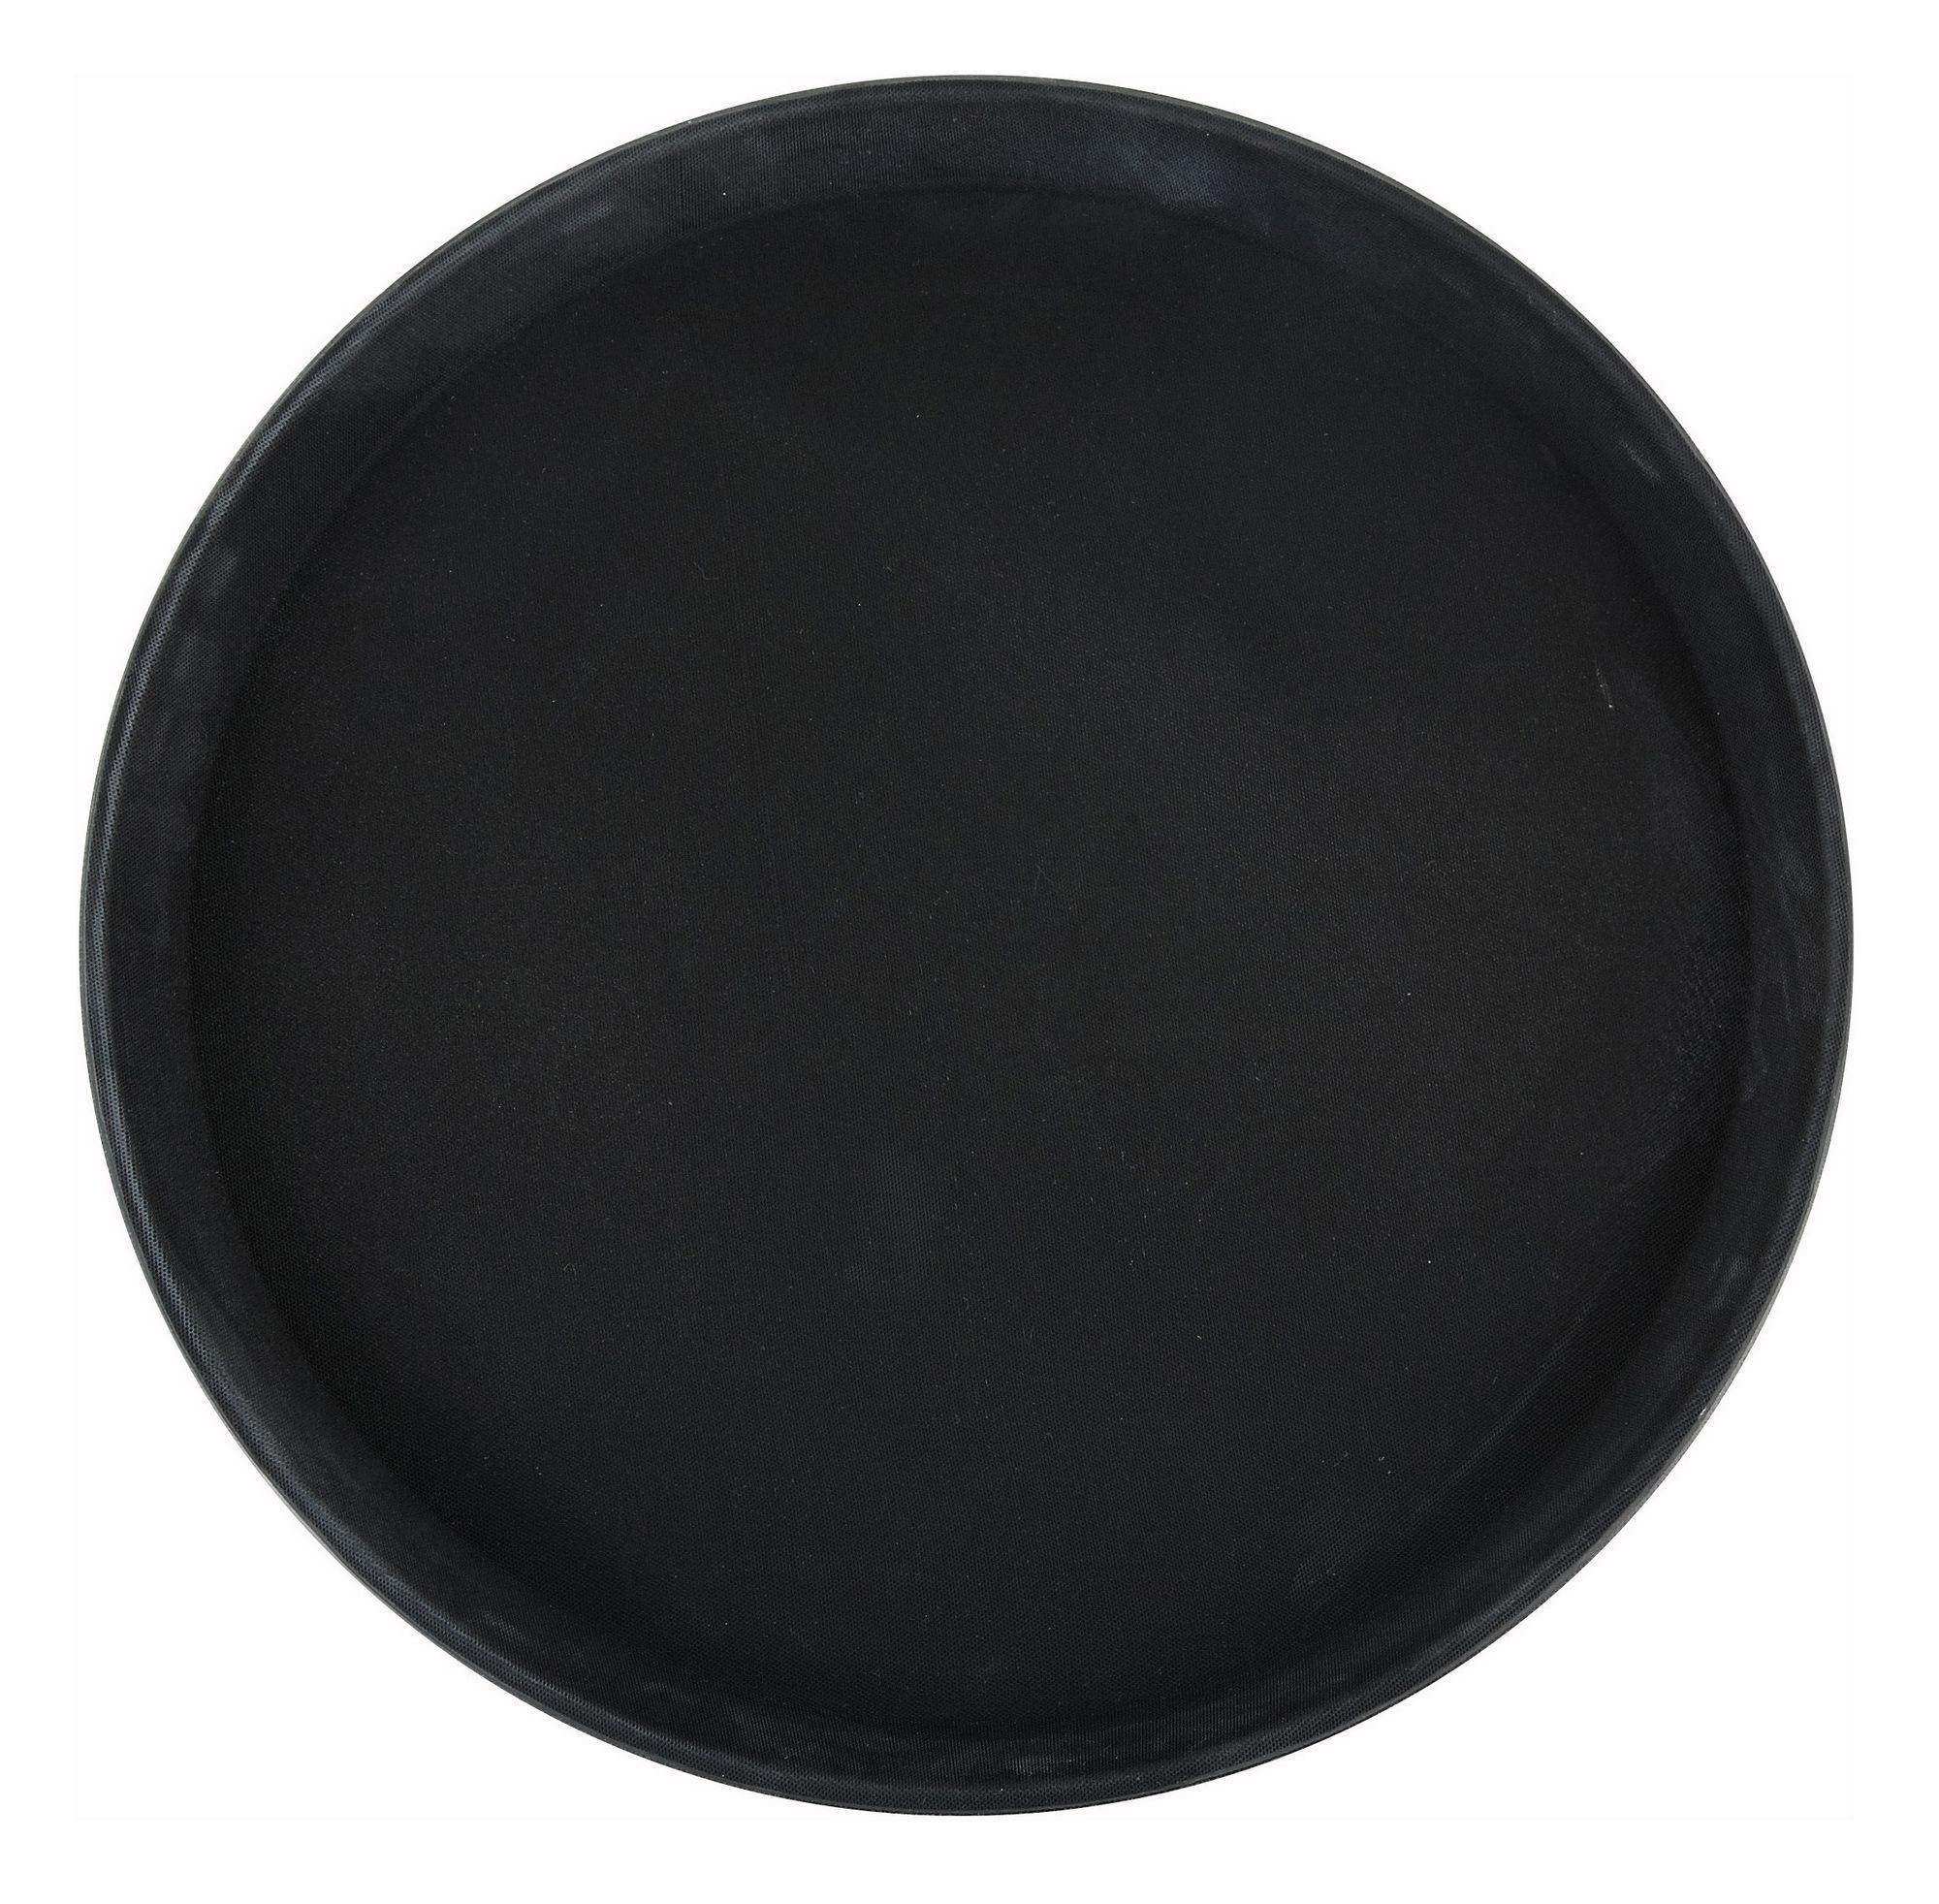 Black Easy Hold Round Tray - 11 Dia.